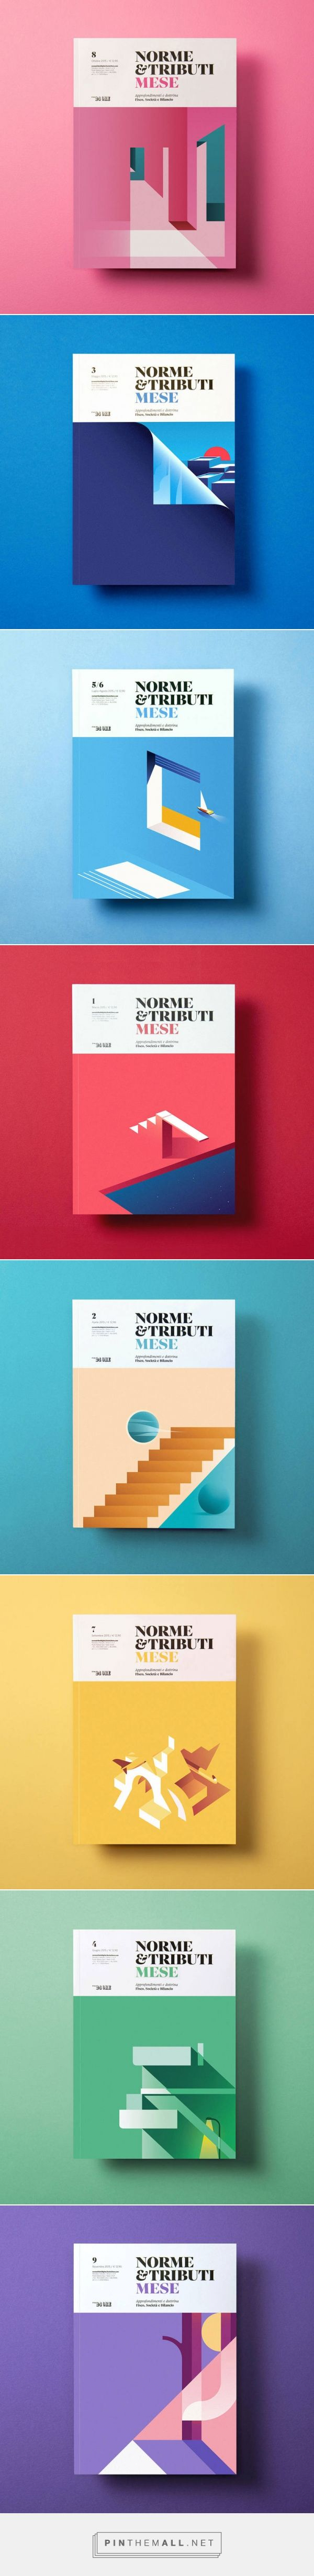 An Italian Economic Revue features better cover designs than most design magazines